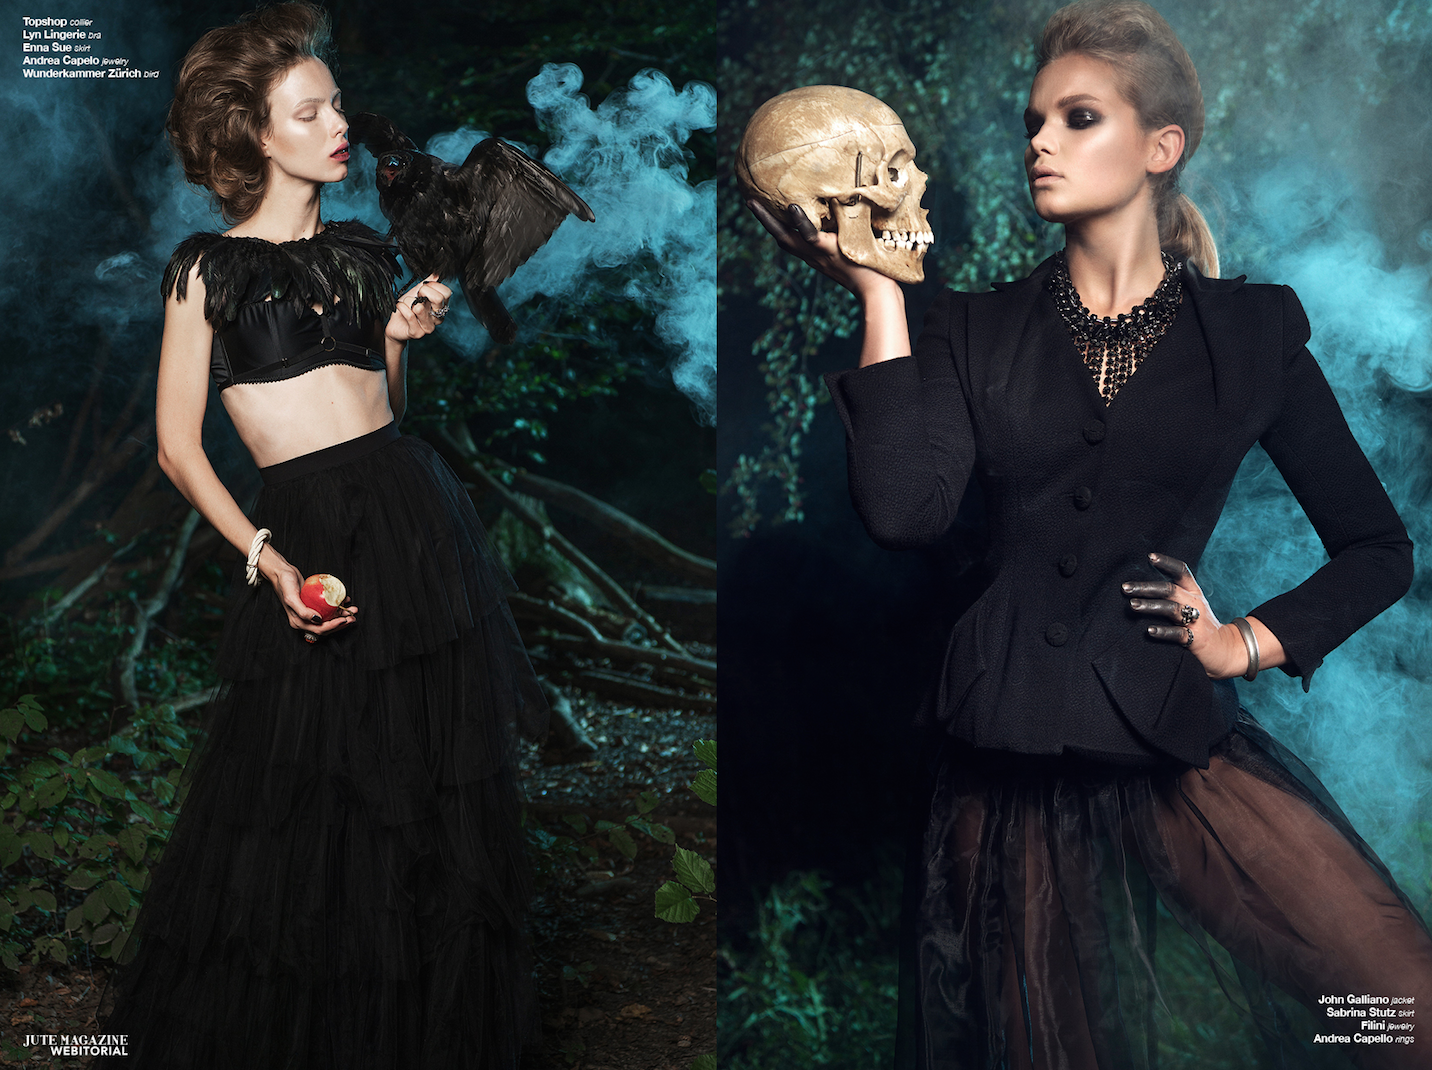 Hair, Nail, Make-up und Fashion styling portfolio / letizia-abbatiello - revenge---totenkopf-ID170-1.png?v=1585908065